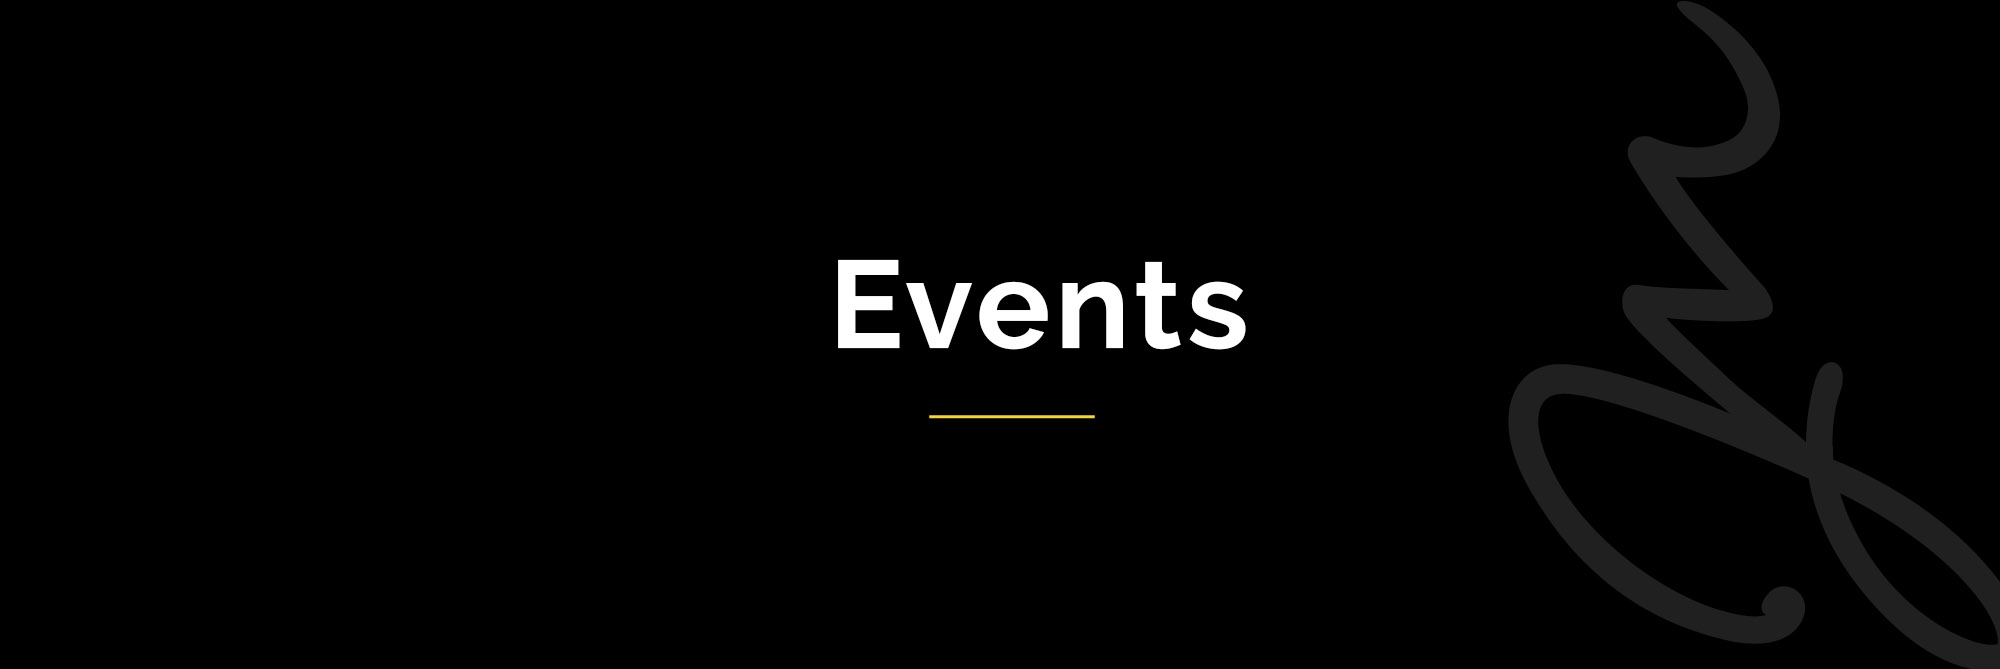 events-janine-marin